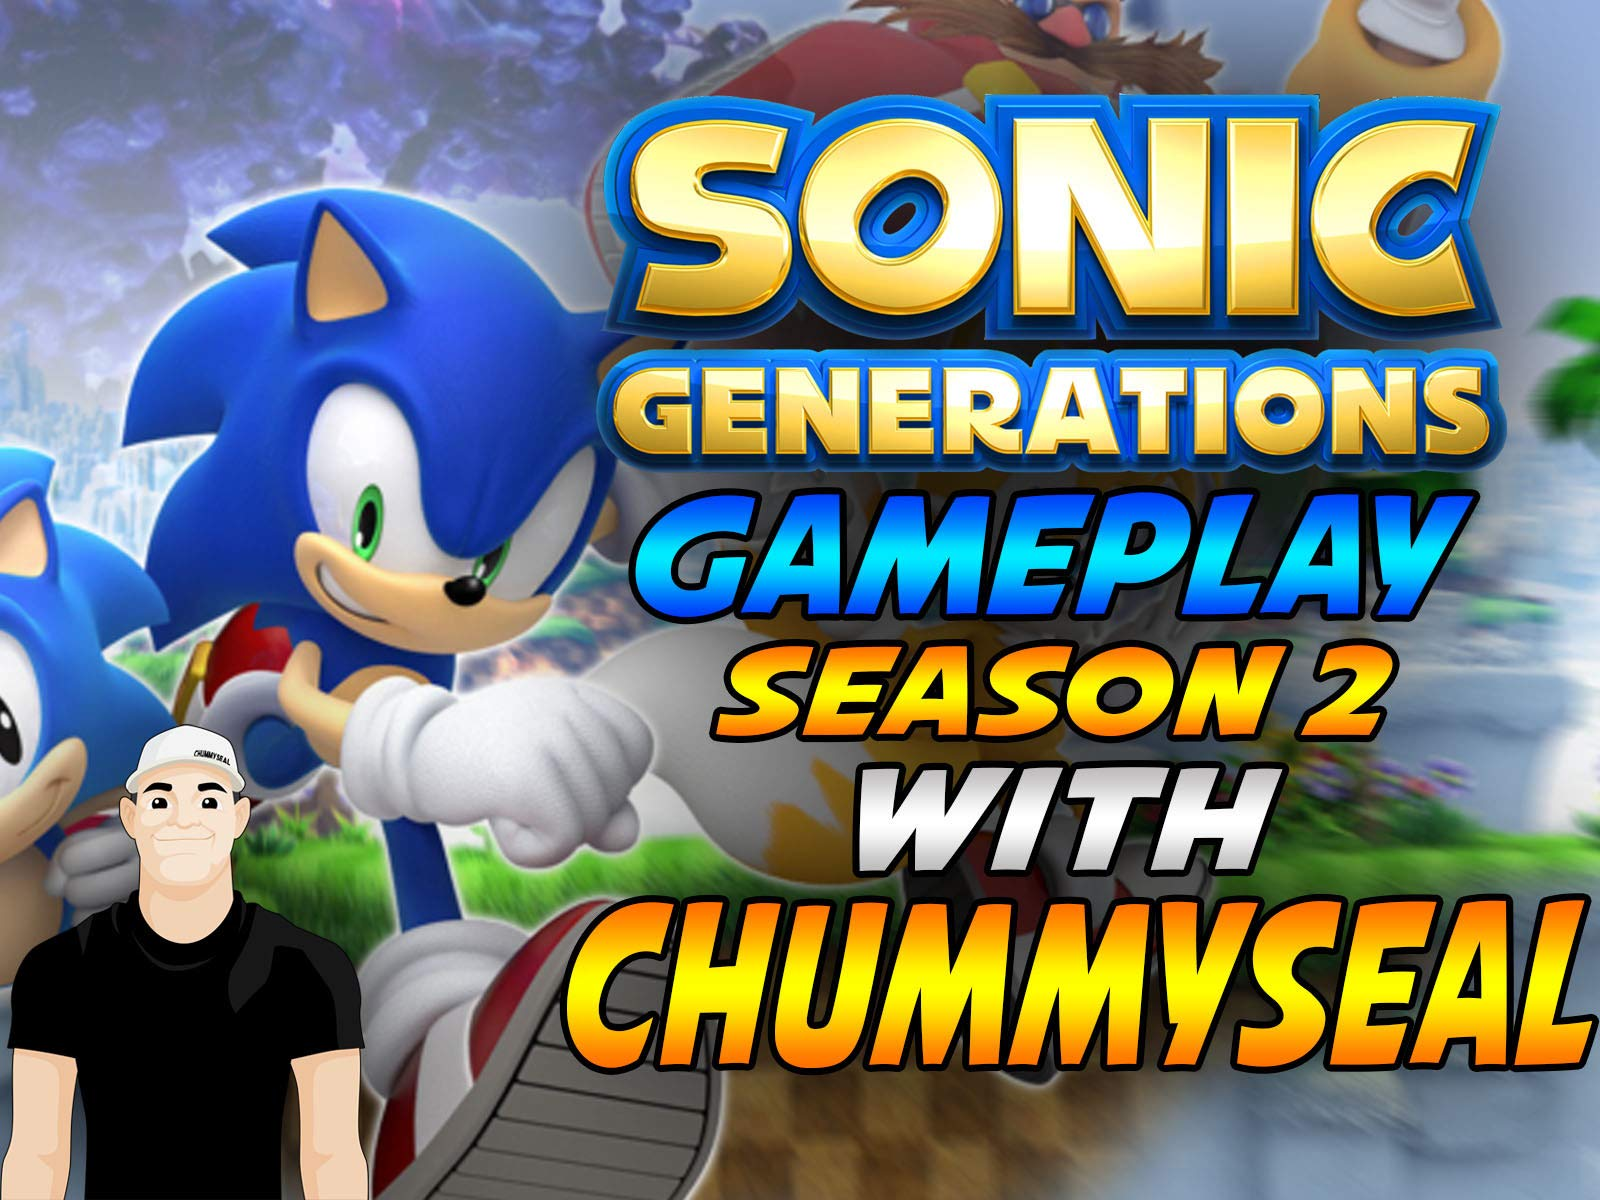 Watch Sonic Generations Gameplay With Chummy Seal Prime Video